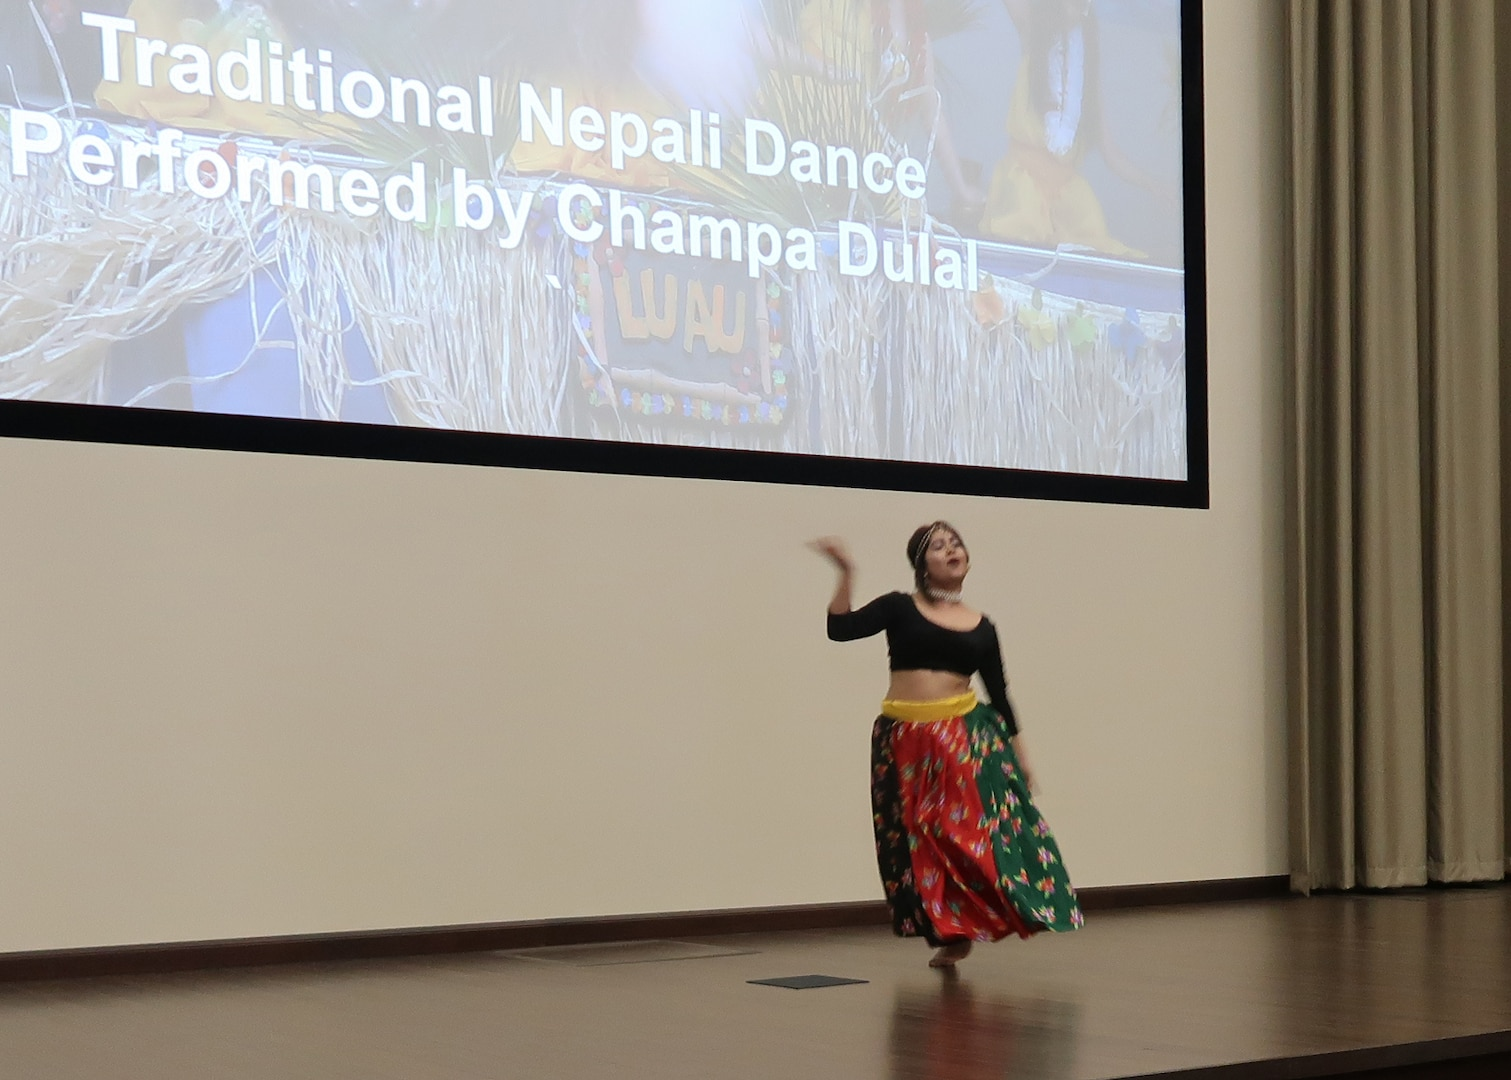 Champa Dulal of the Bhutanese Community Center performed a traditional Nepali dance during the DLA Distribution's Multicultural Committee Asian Americans and Pacific Islanders event held on Wednesday, May 23.